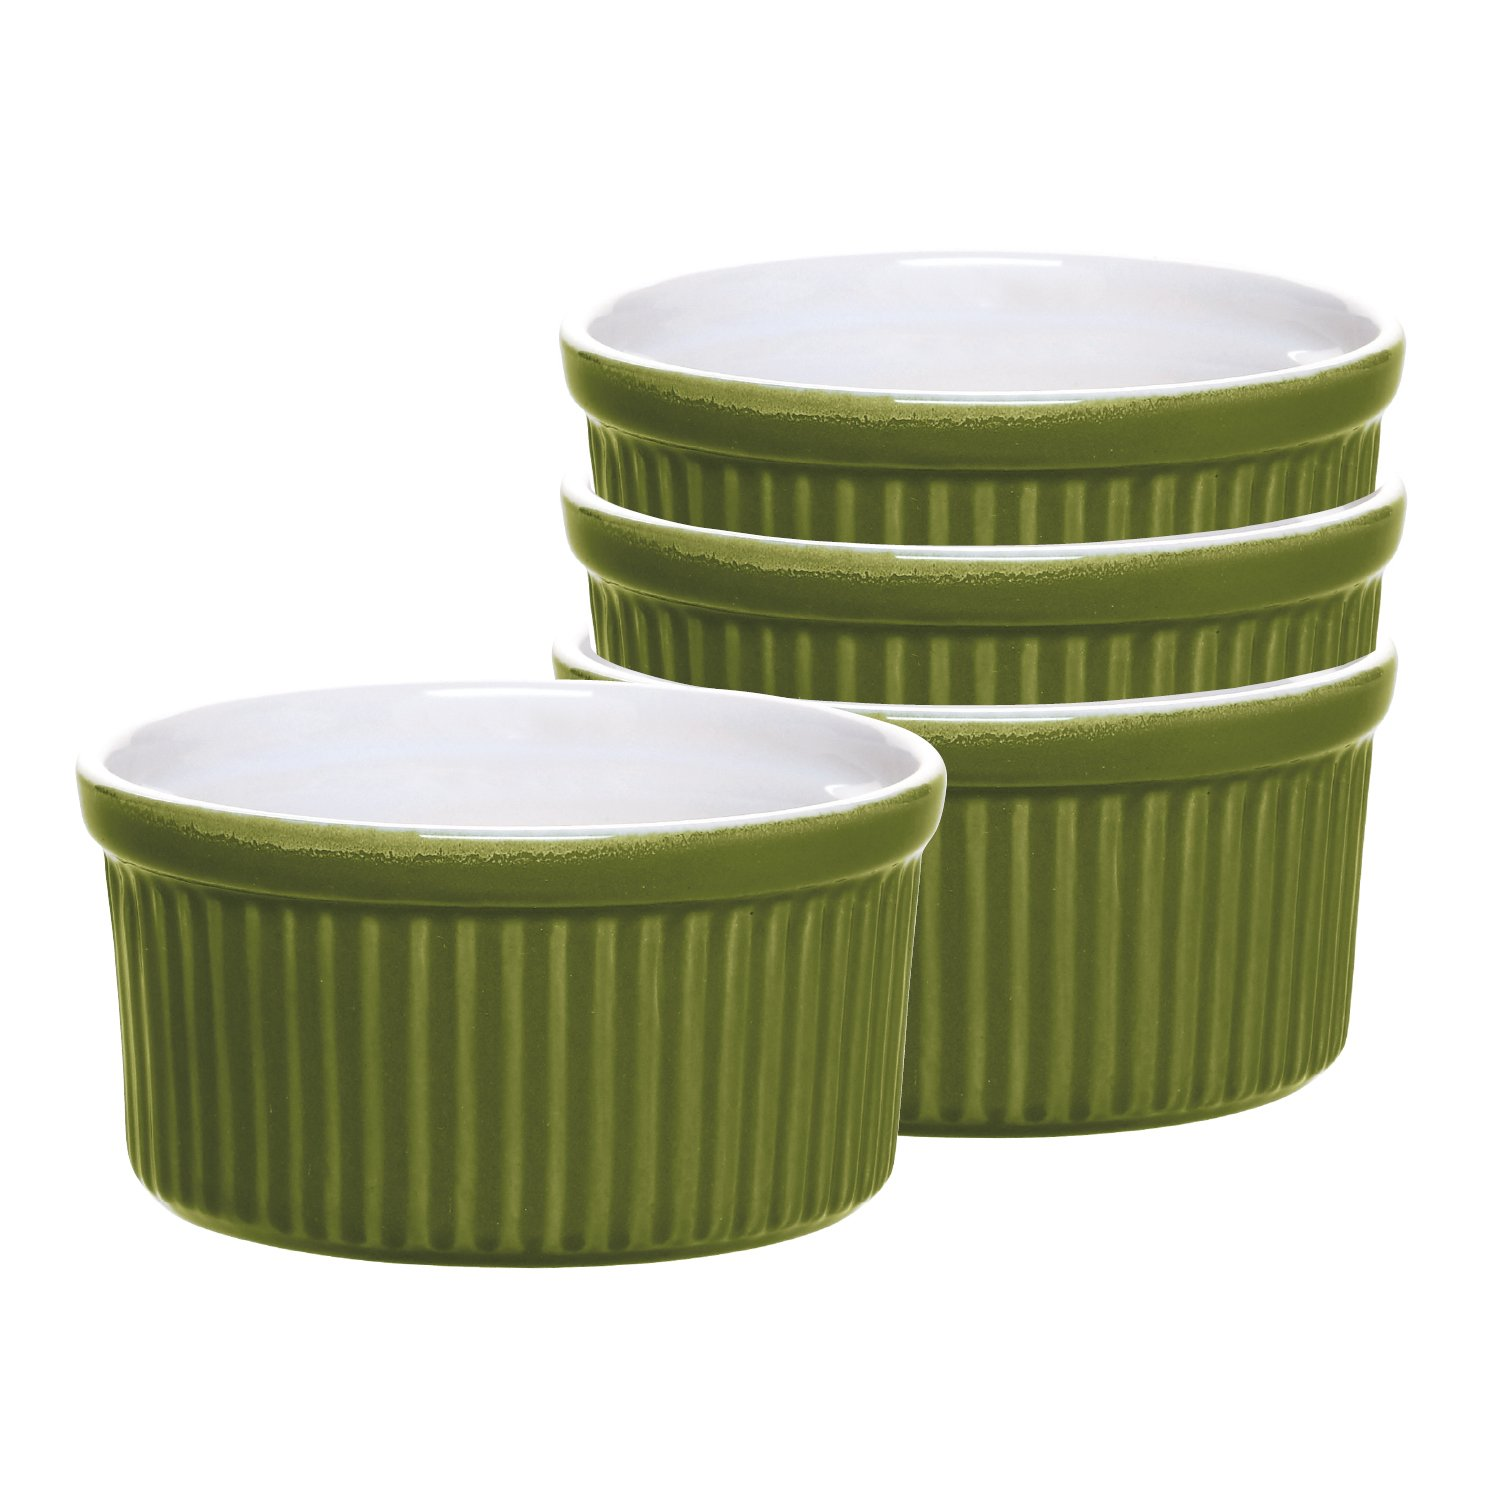 Emile Henry Ramekin, Olive, Set of 4